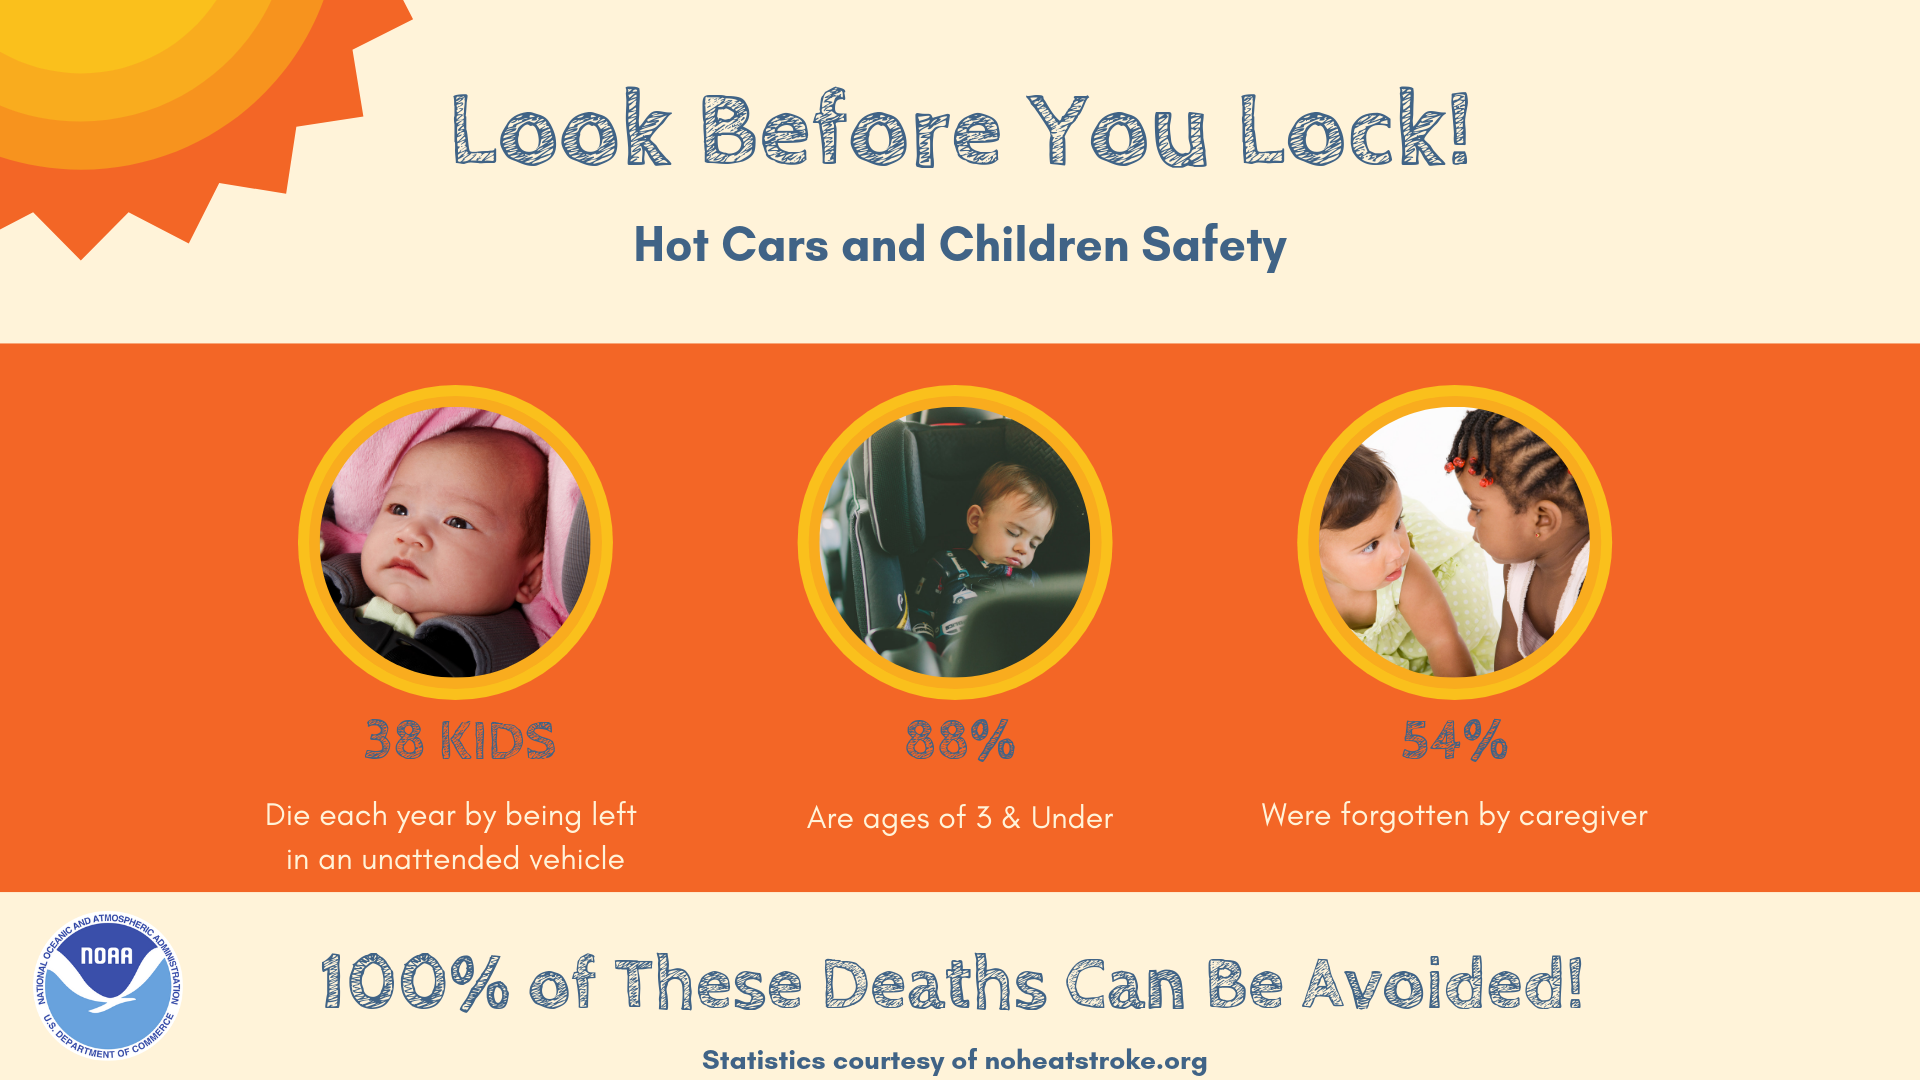 Look Before You Lock! Hot Cars and Children Safety. 38 kids die each year by being left in an unattended vehicle. 88% are ages of 3 & under. 54% were forgotten by a caregiver. 100% of these deaths can be avoided! Statistics courtesy of www.noheatstroke.org